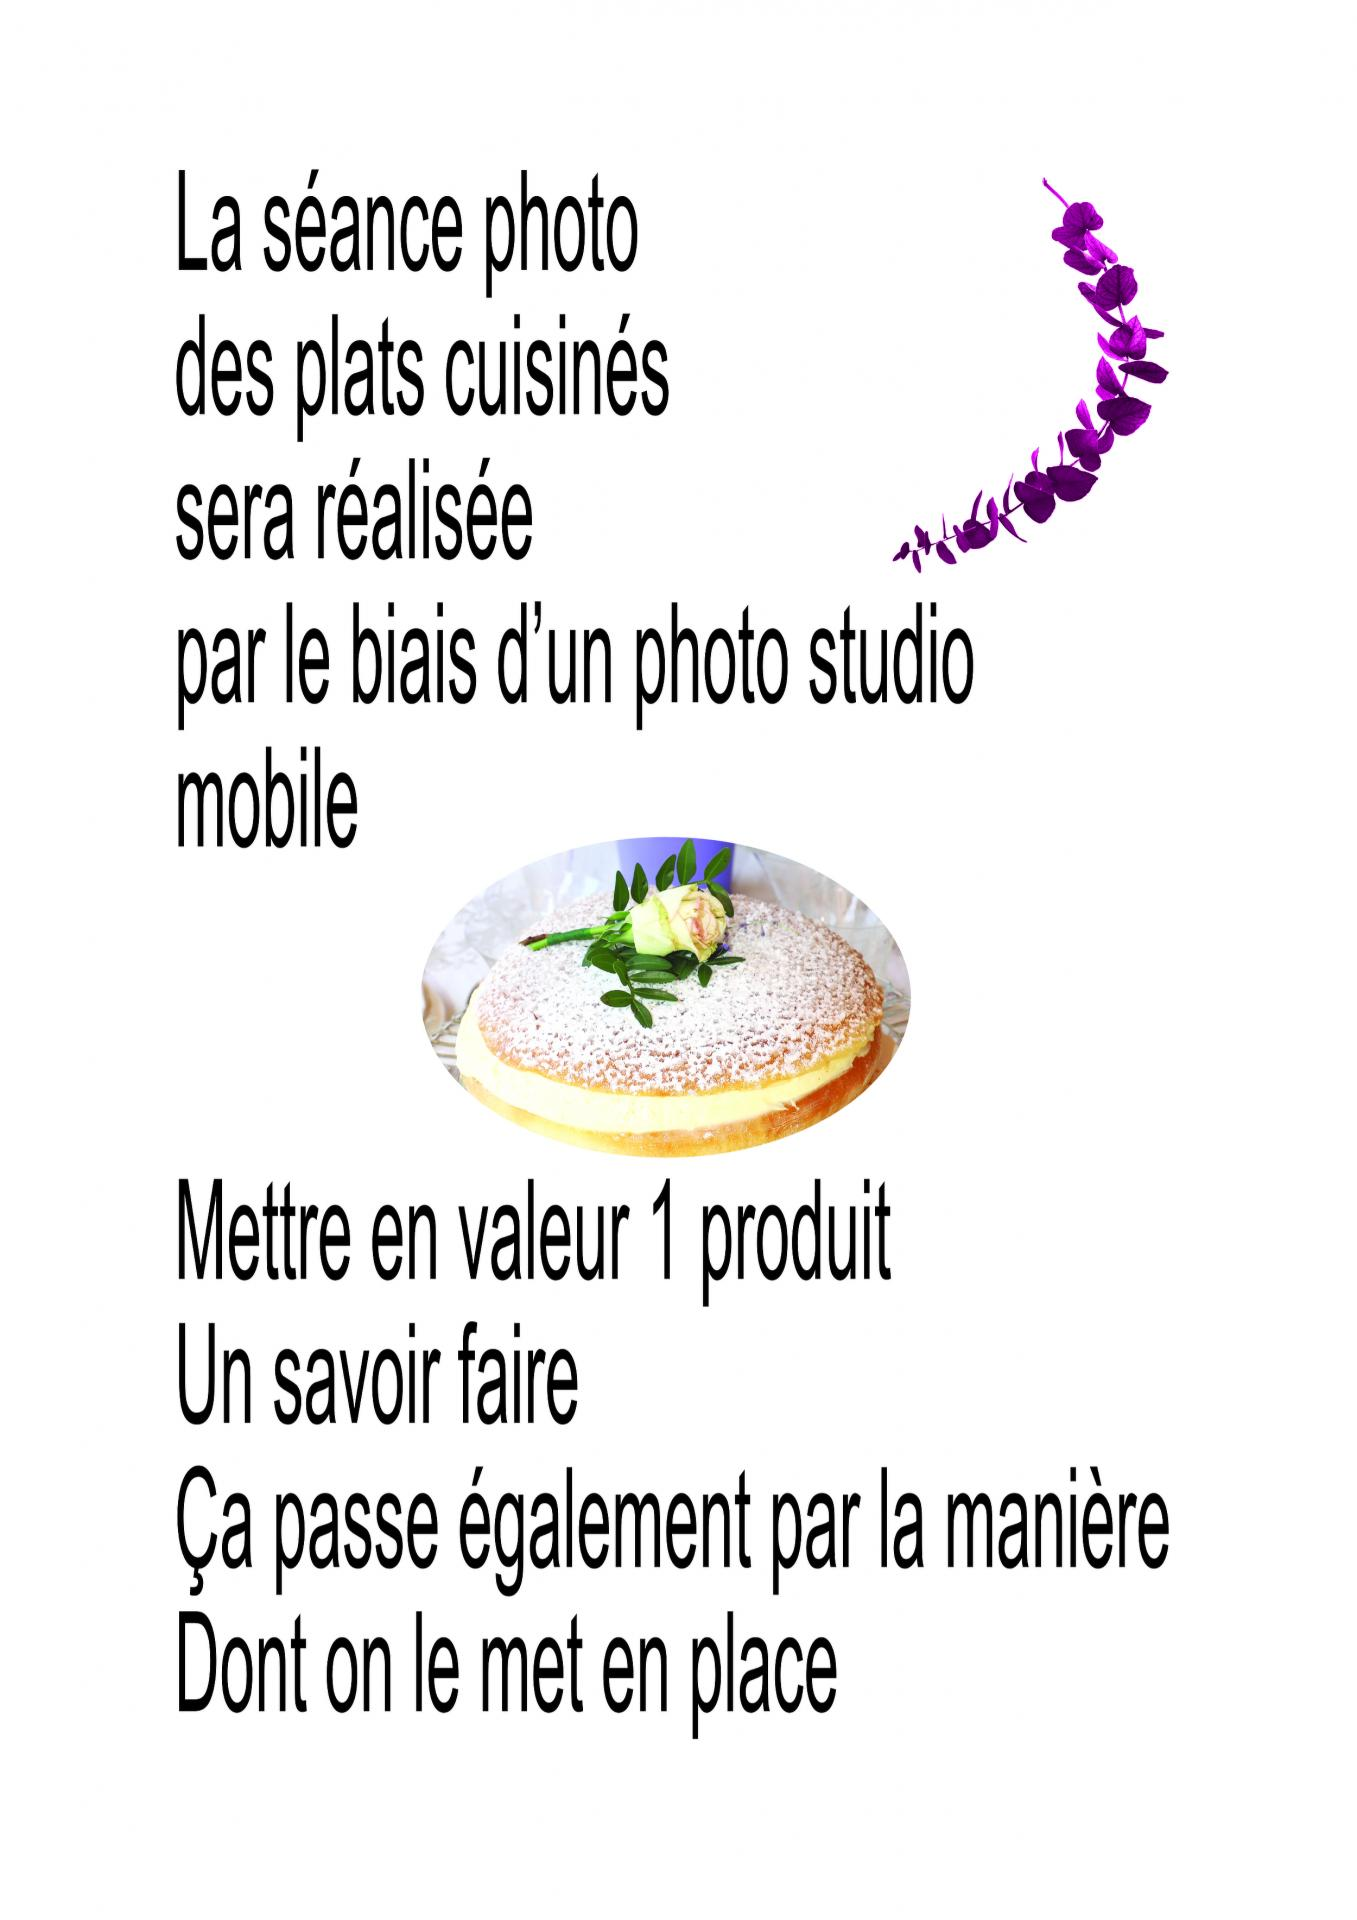 Shooting culinaire 0661103882